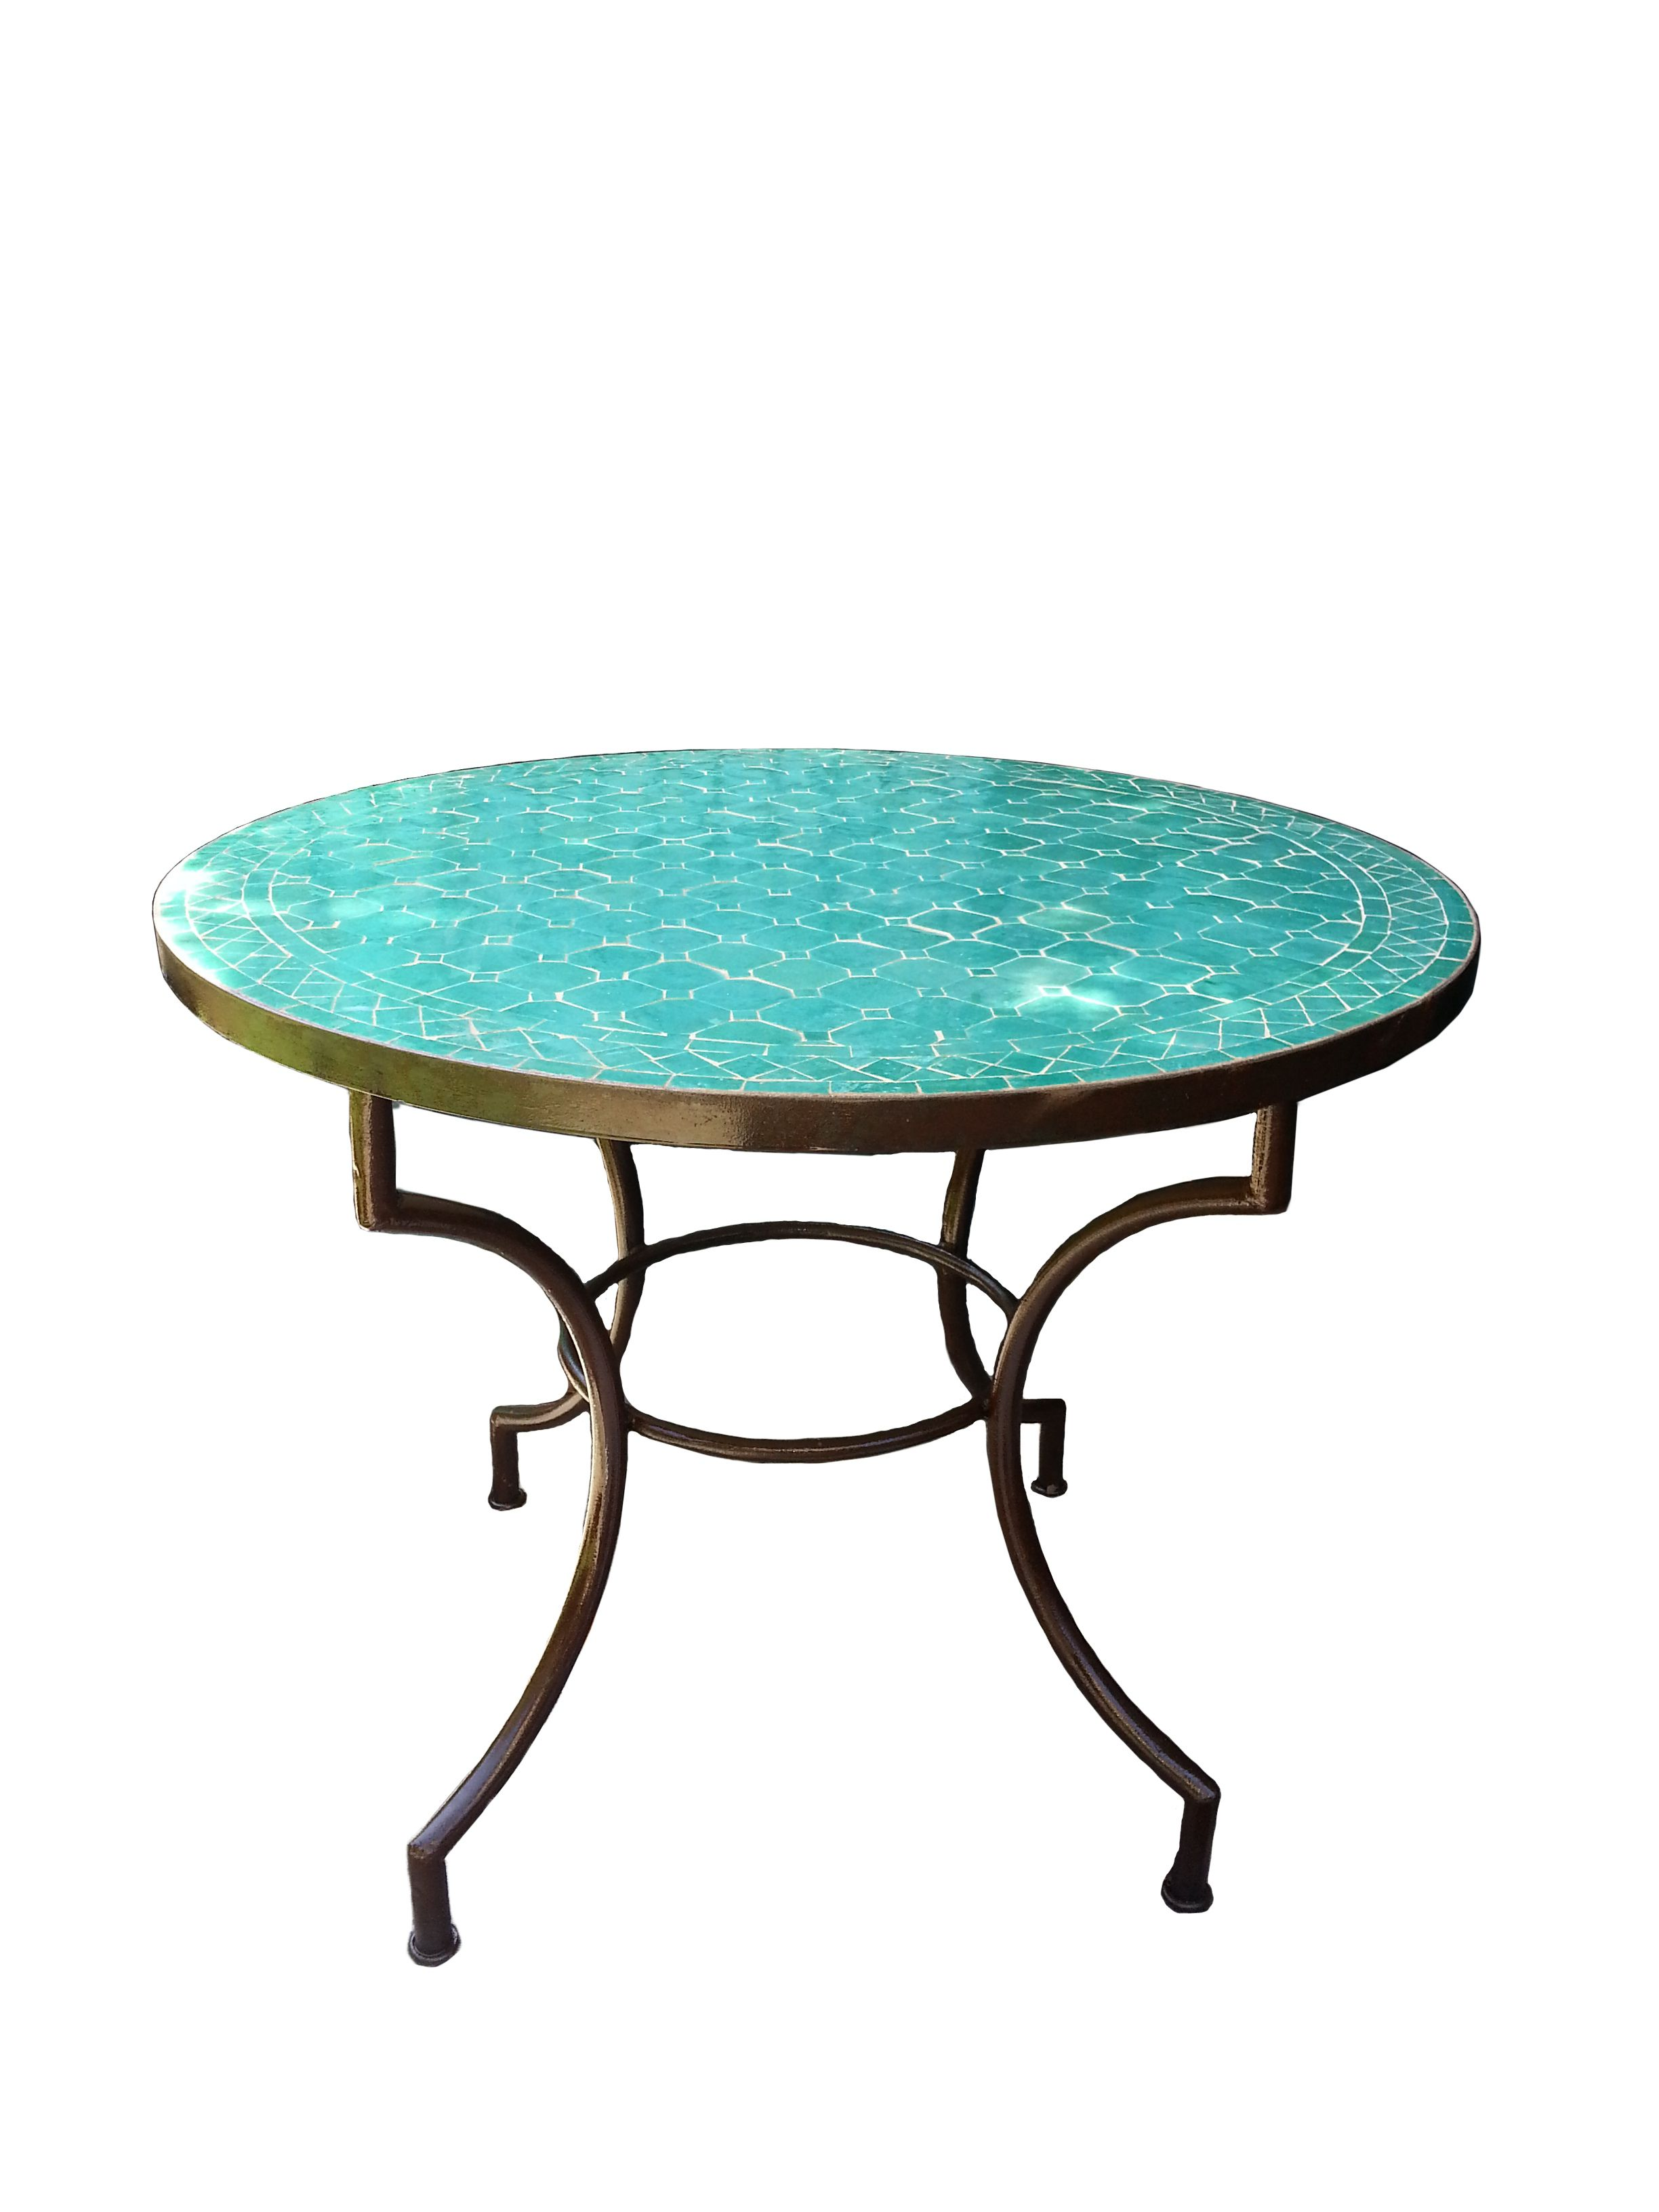 60 Mosaic Table Corra Design Aqua Kenza Imports Favorite  # Muebles Fischel